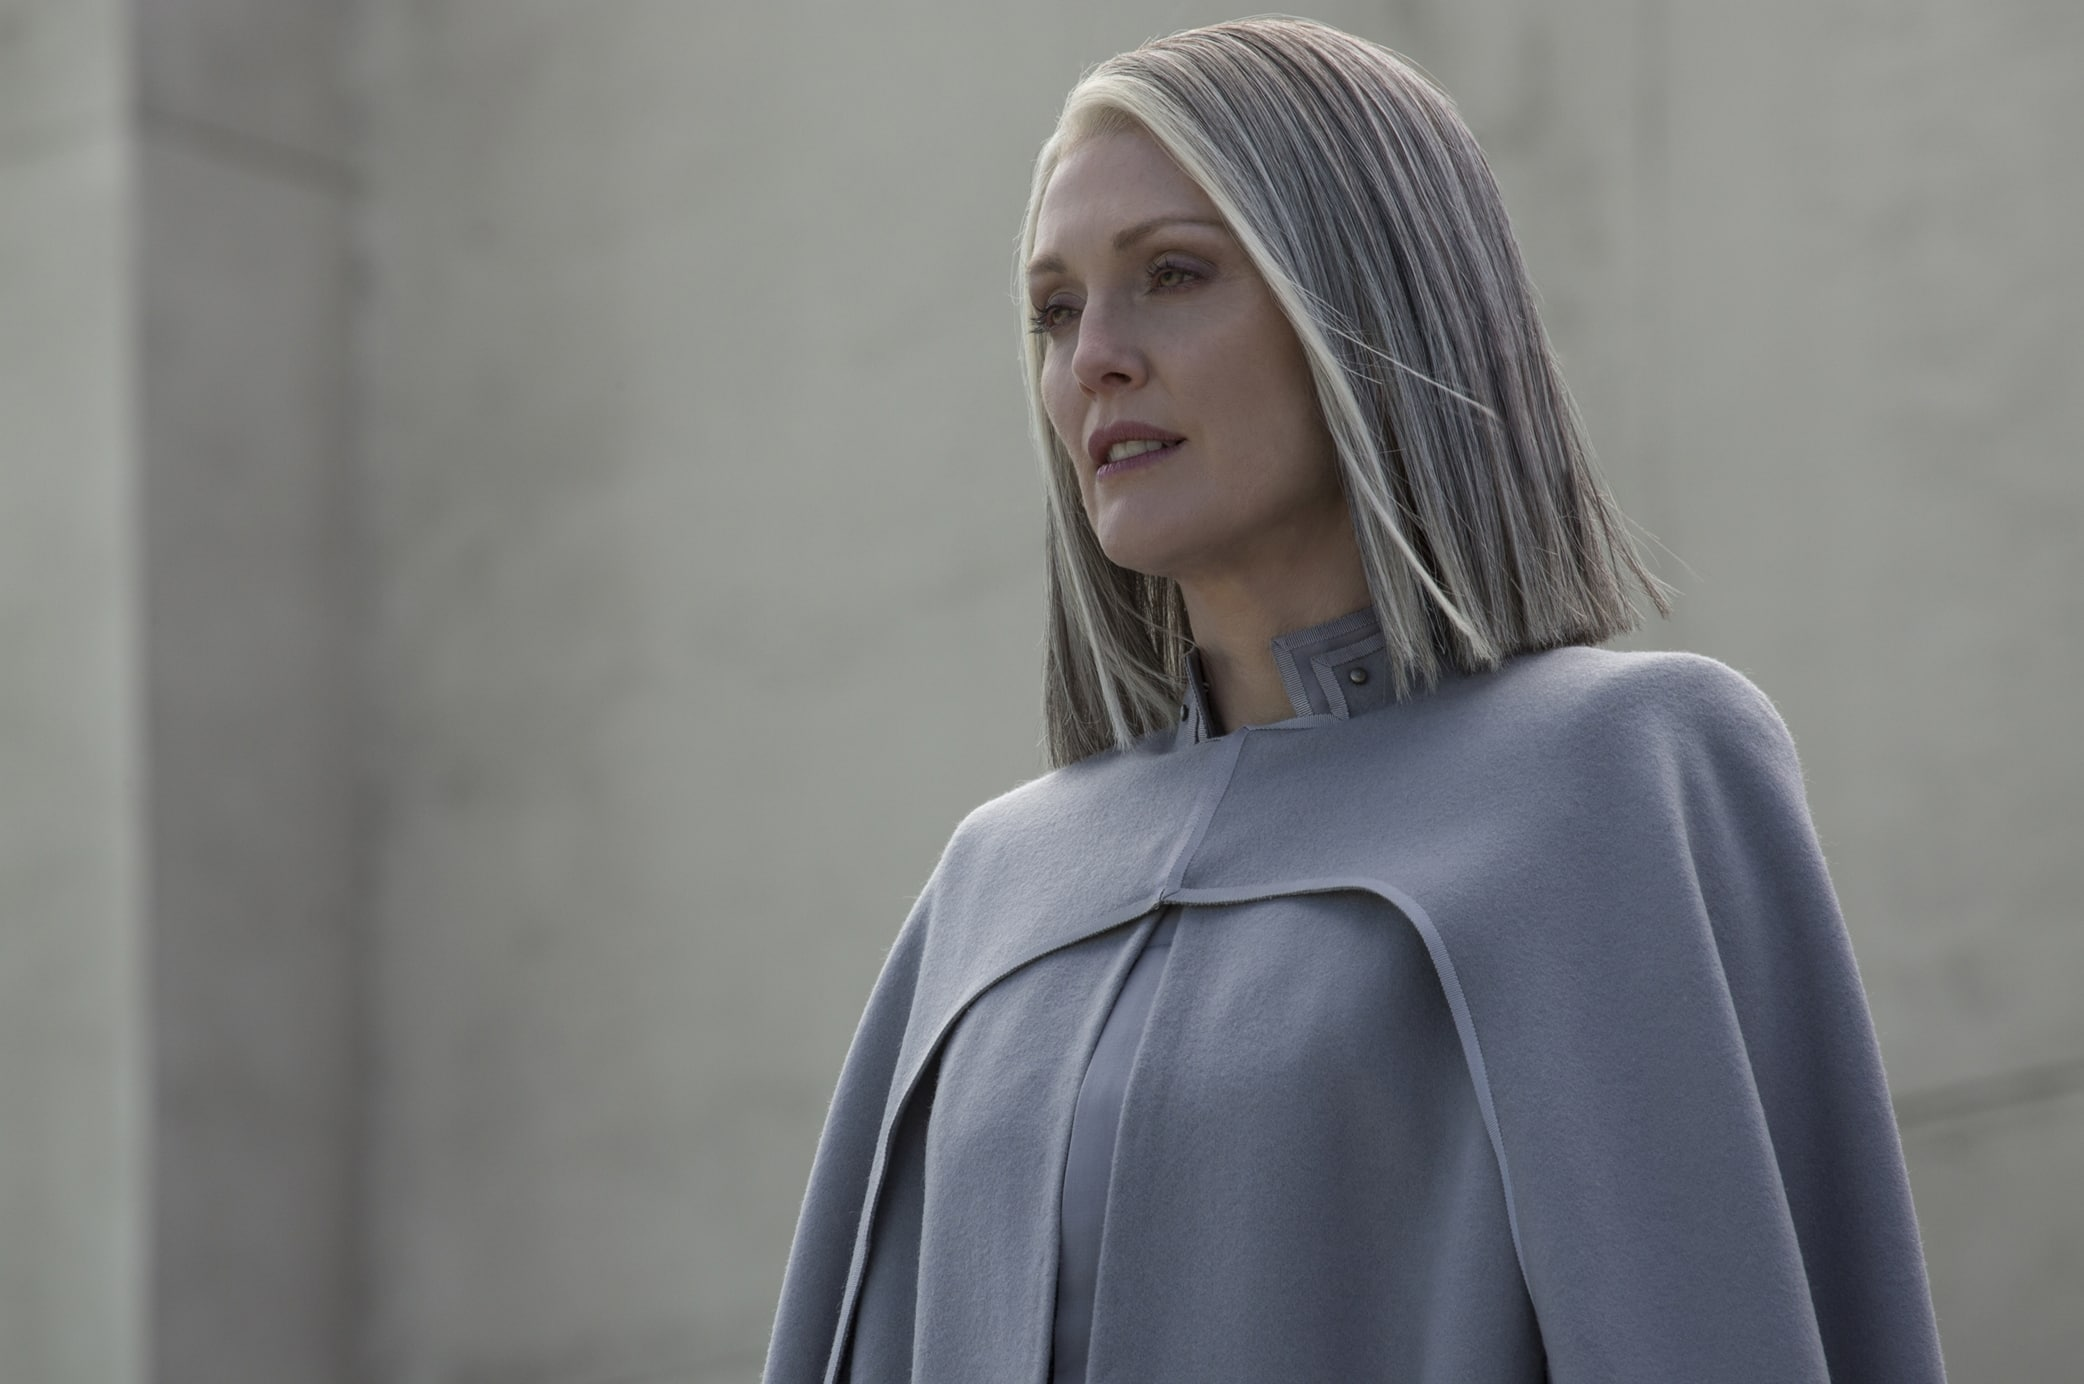 Julianne Moore as President Alma Coin in The Hunger Games